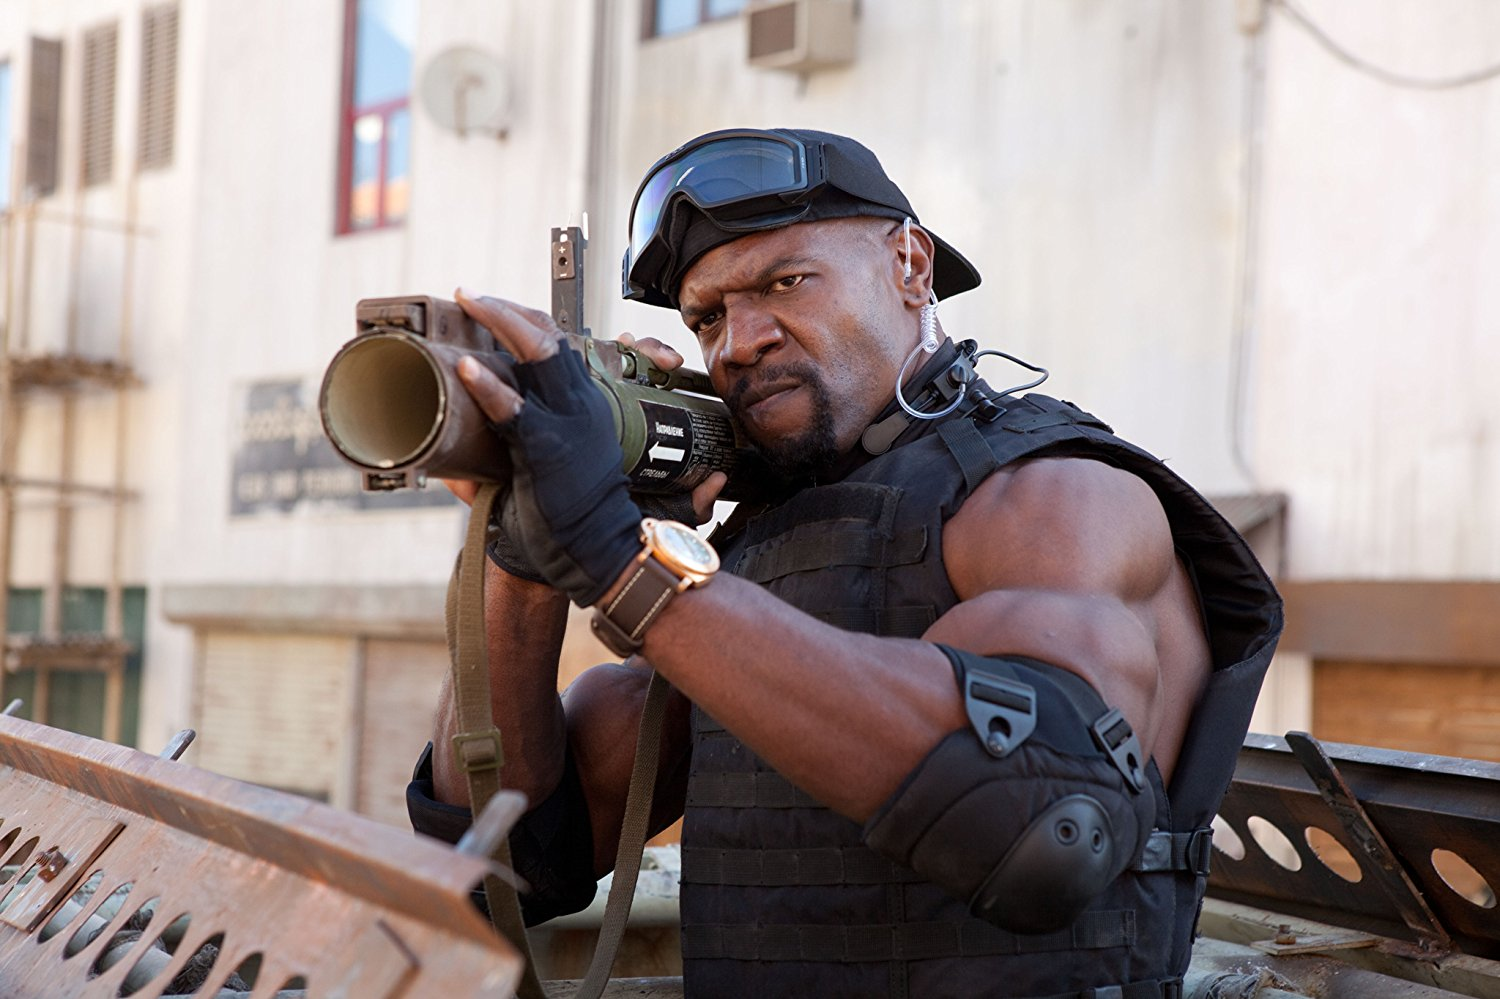 Terry Crews in The Expendables 2 (2012)